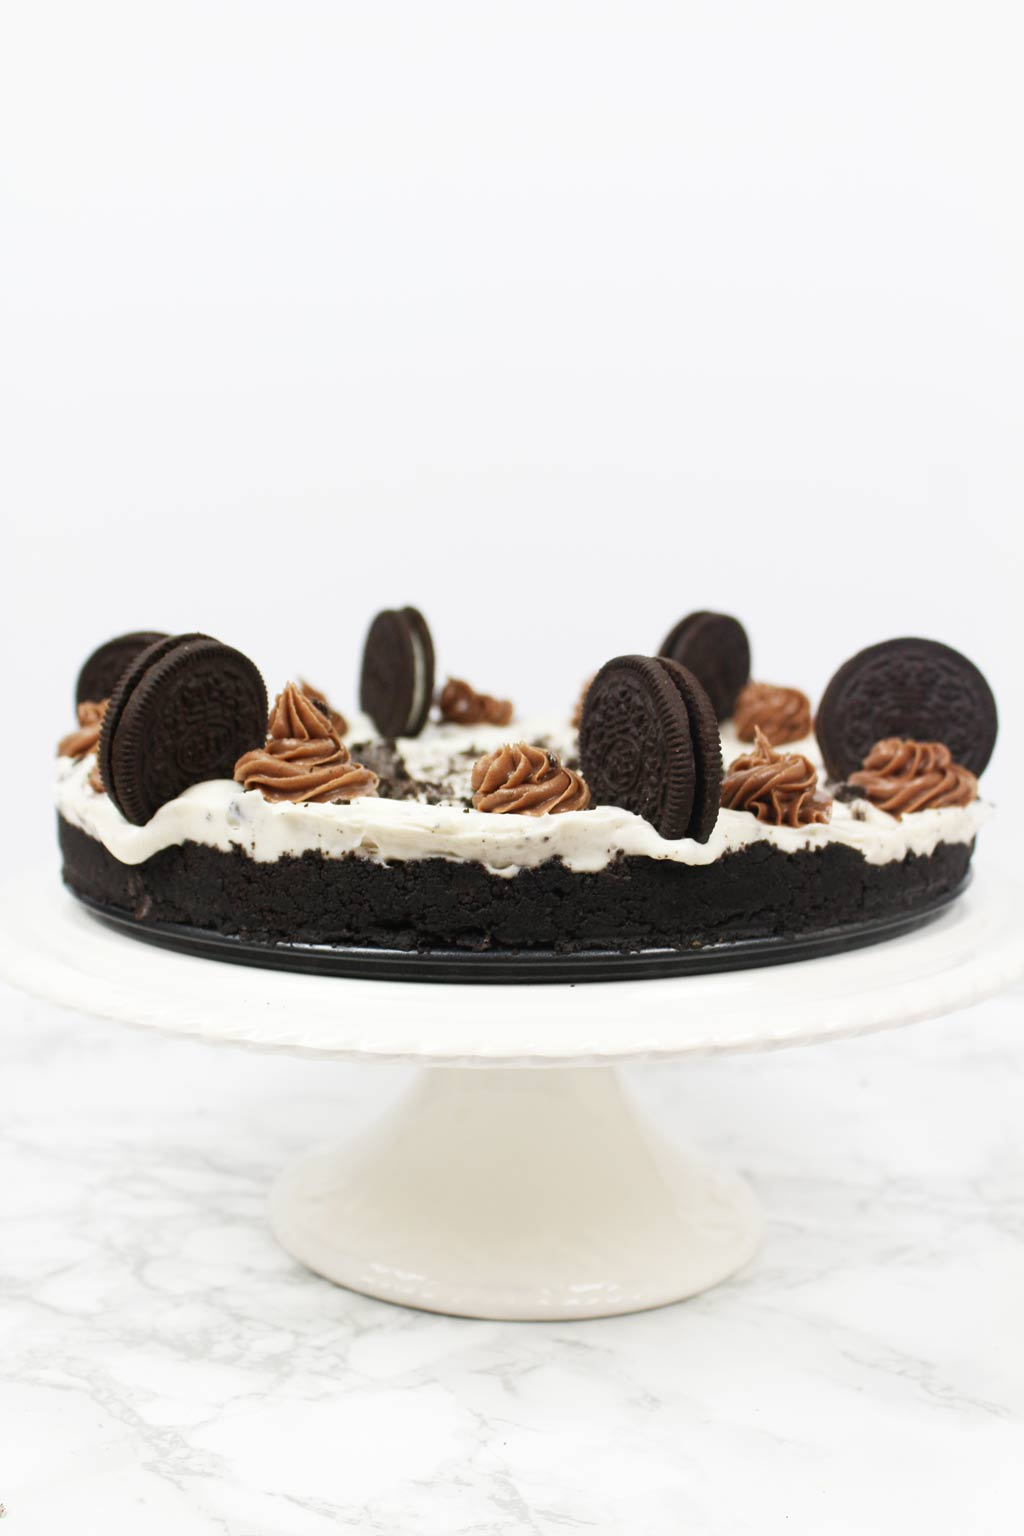 Oreo cheesecake on cake stand